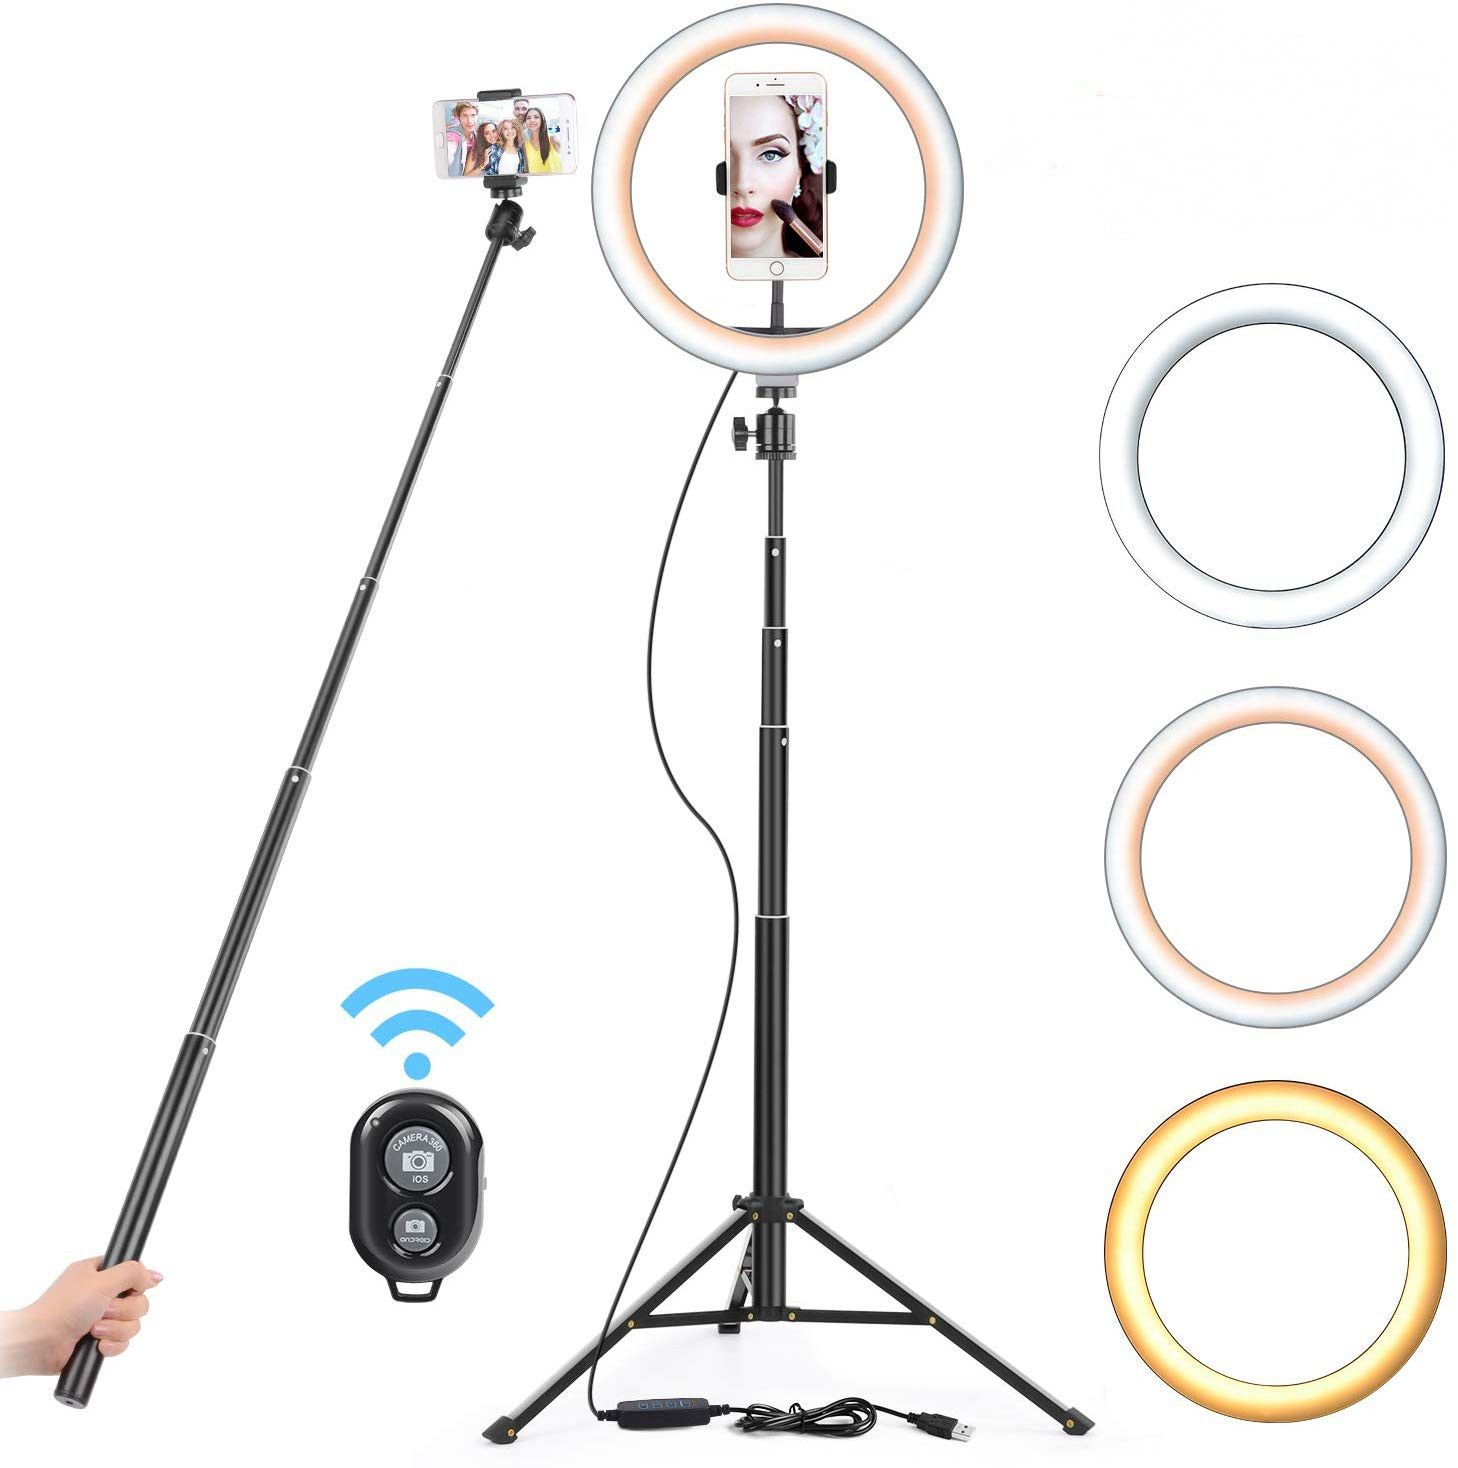 16 26cm USB LED Light Ring Photography Flash Lamp With 130cm Tripod Stand For Makeup Youtube VK Tik Tok Video Dimmable Lighting image